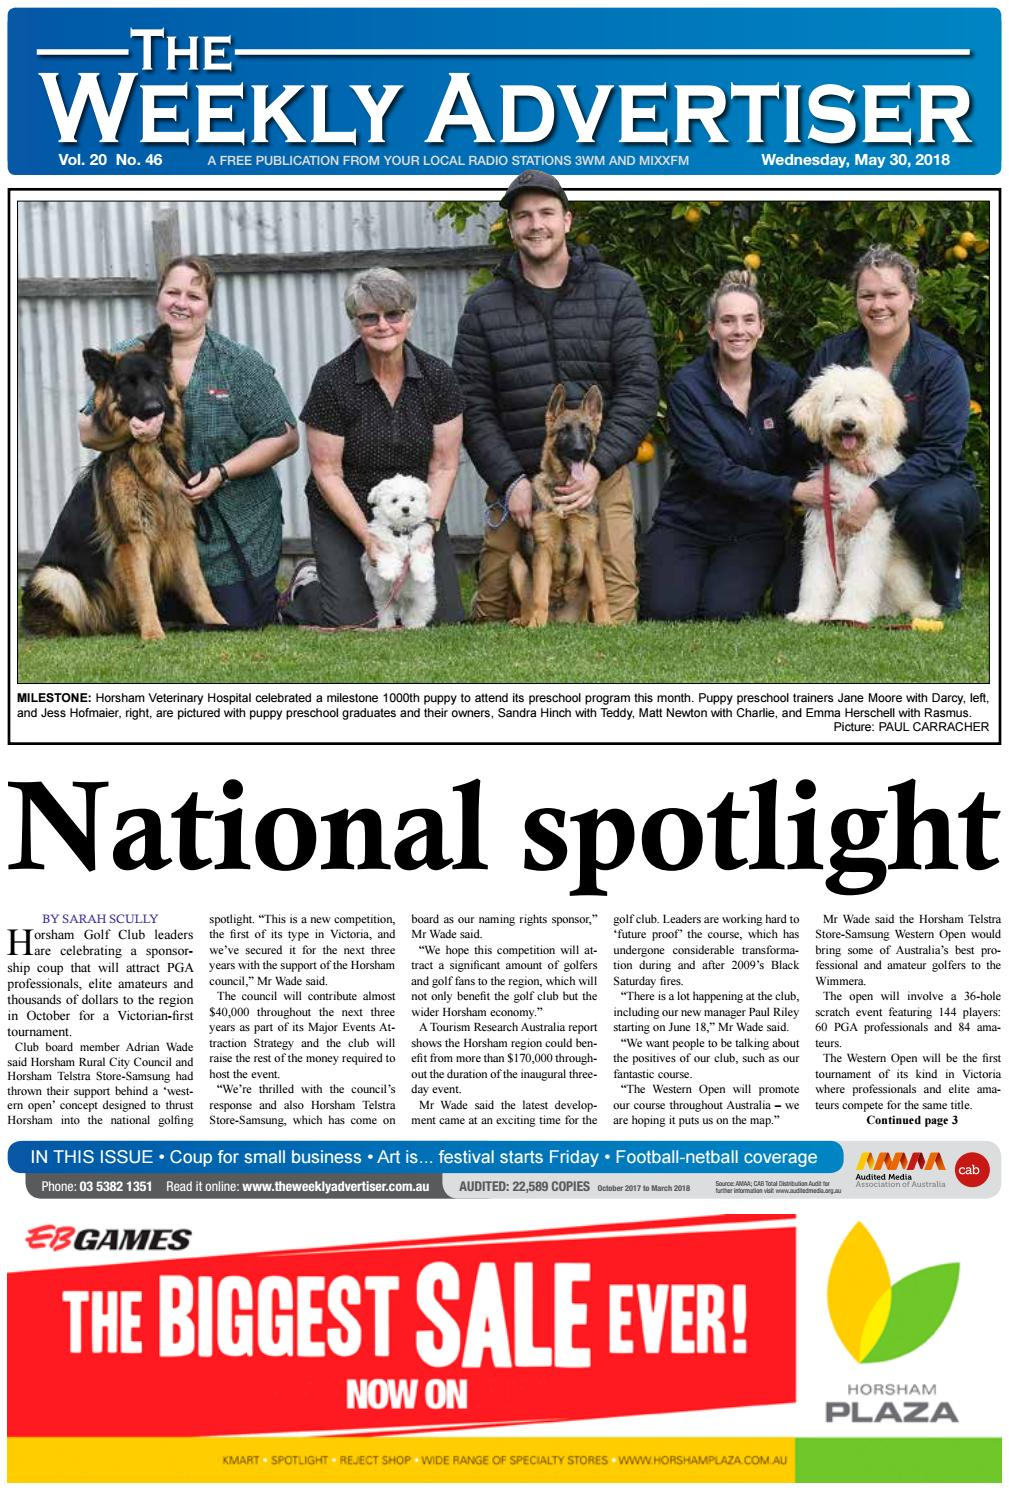 e056c9bfaff The Weekly Advertiser - Wednesday